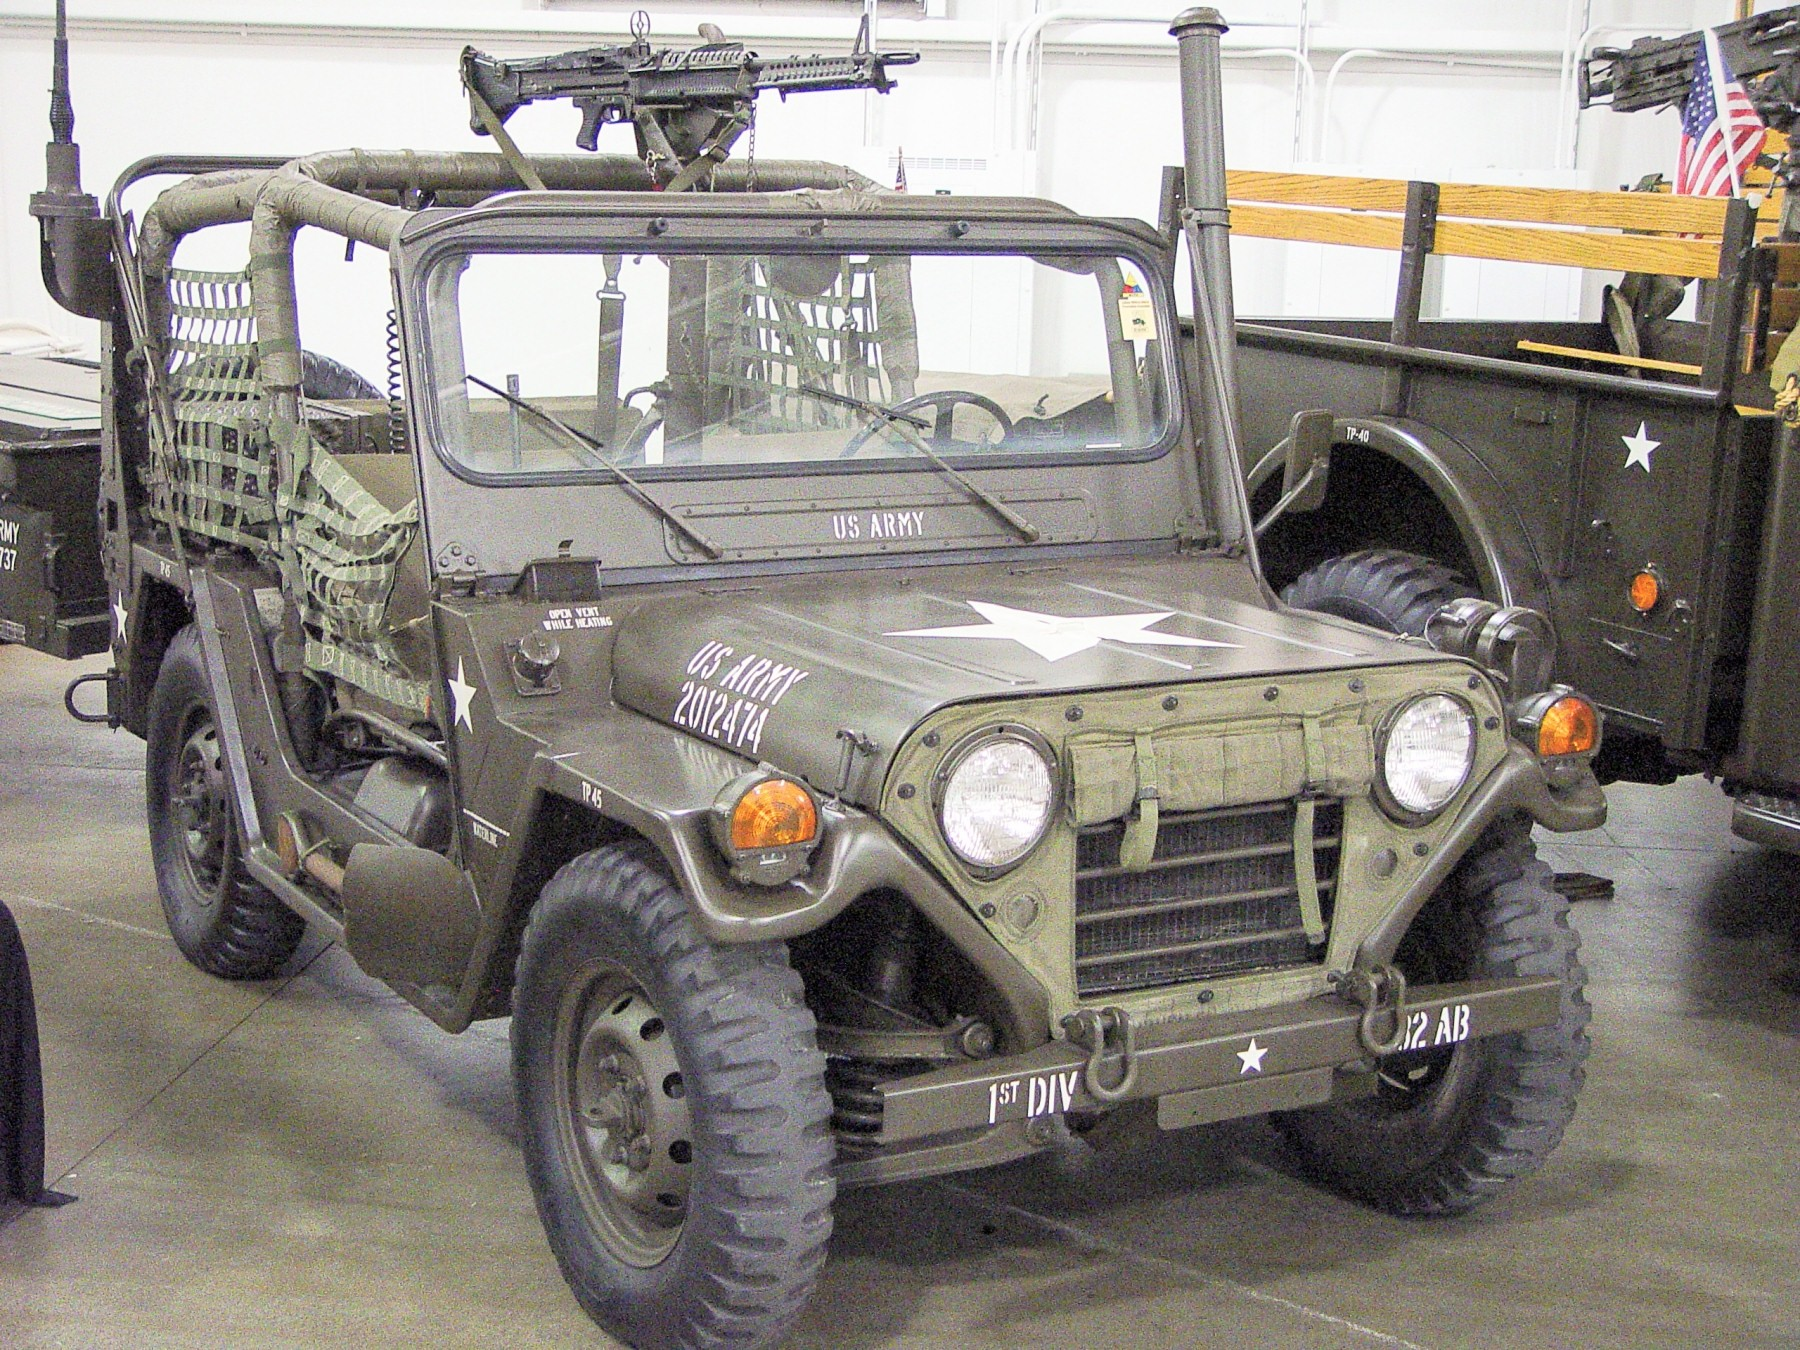 Ford M151 Mutt